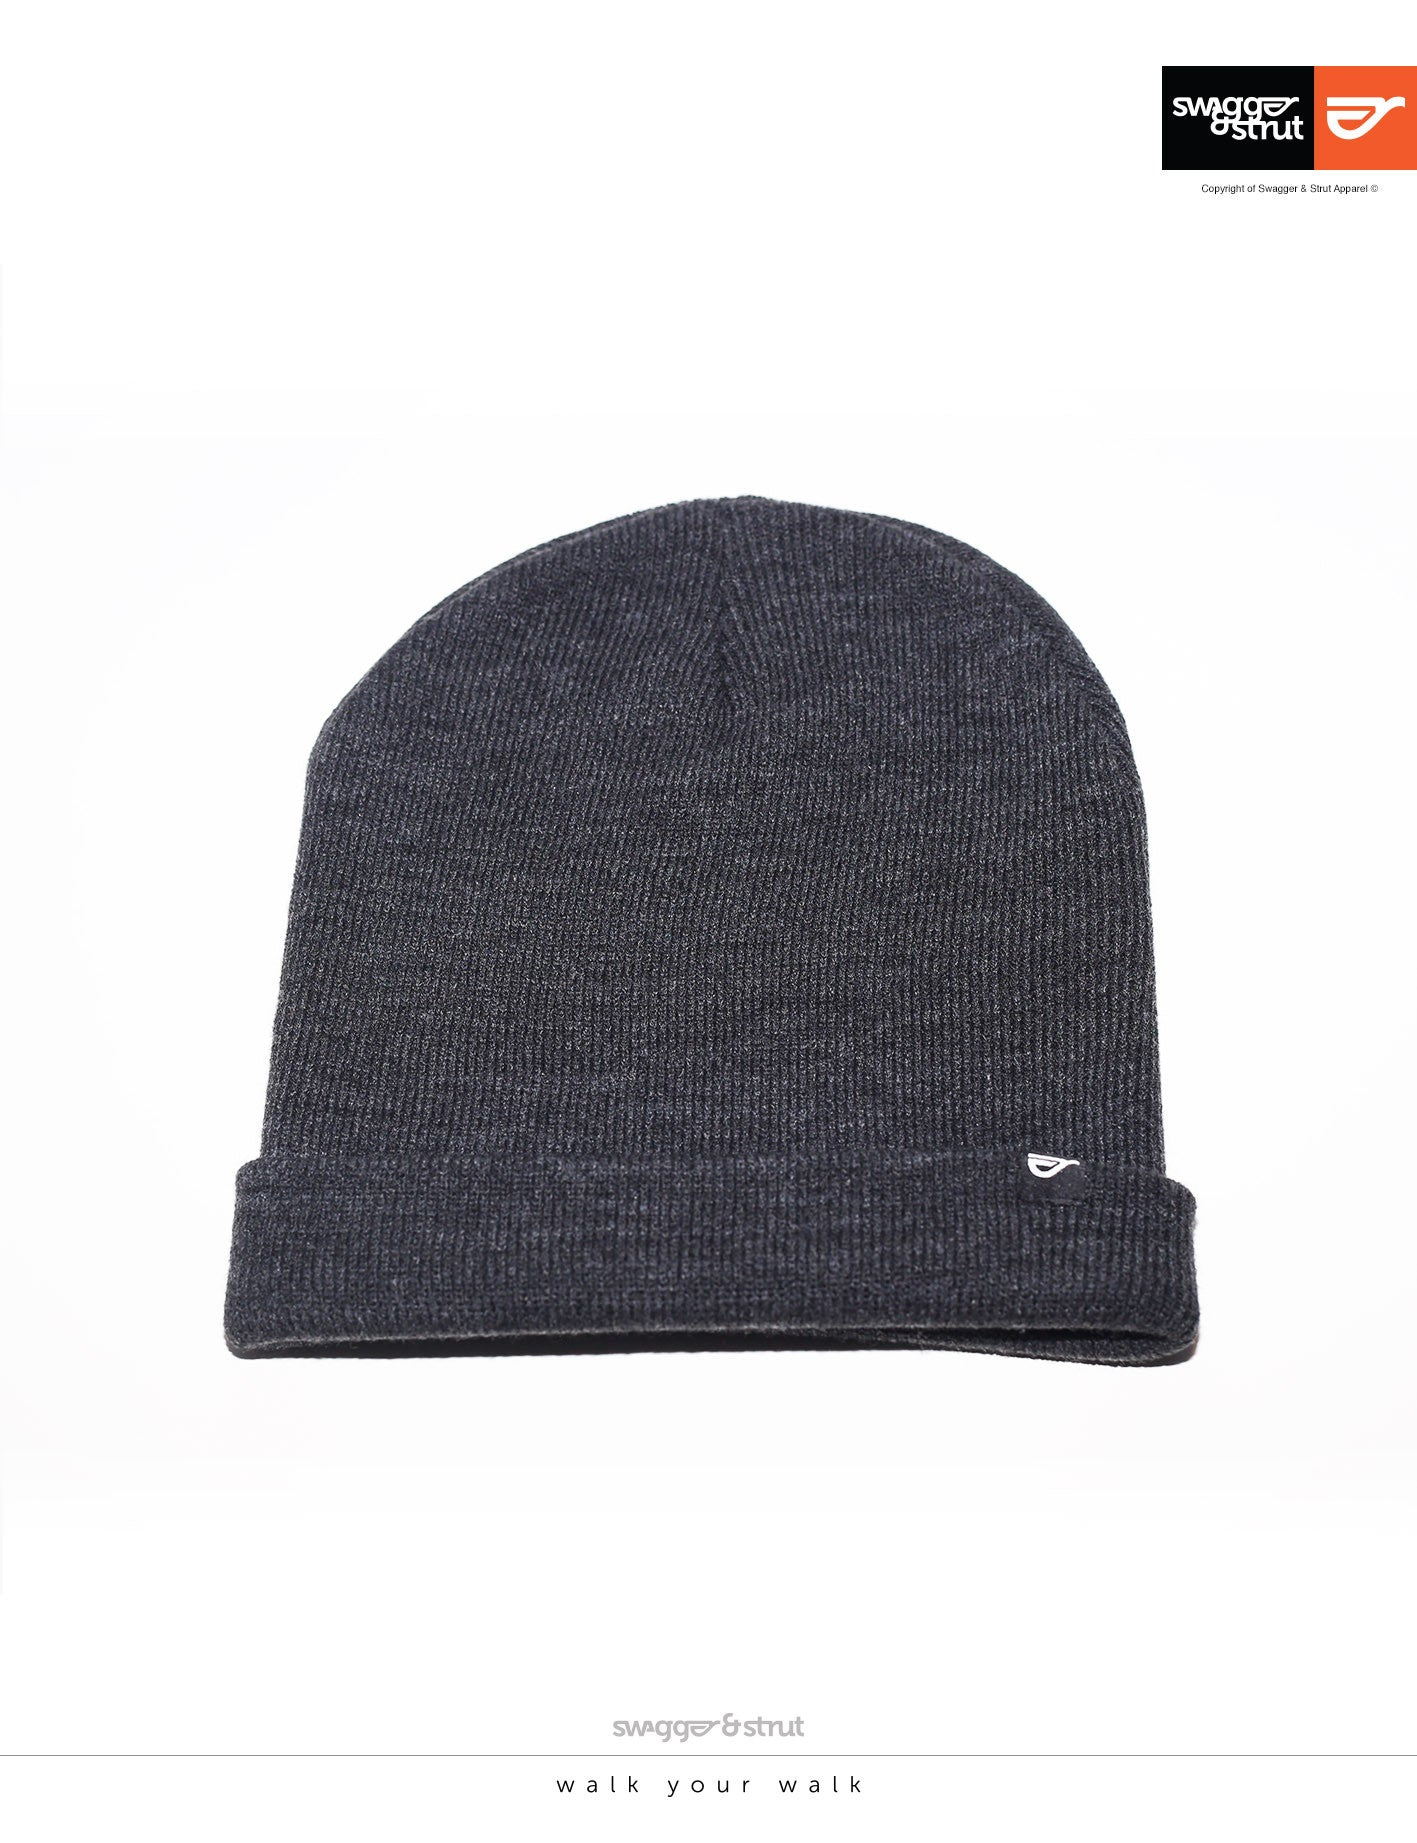 Cuffed Charcoal Beanie simple pip logo label only